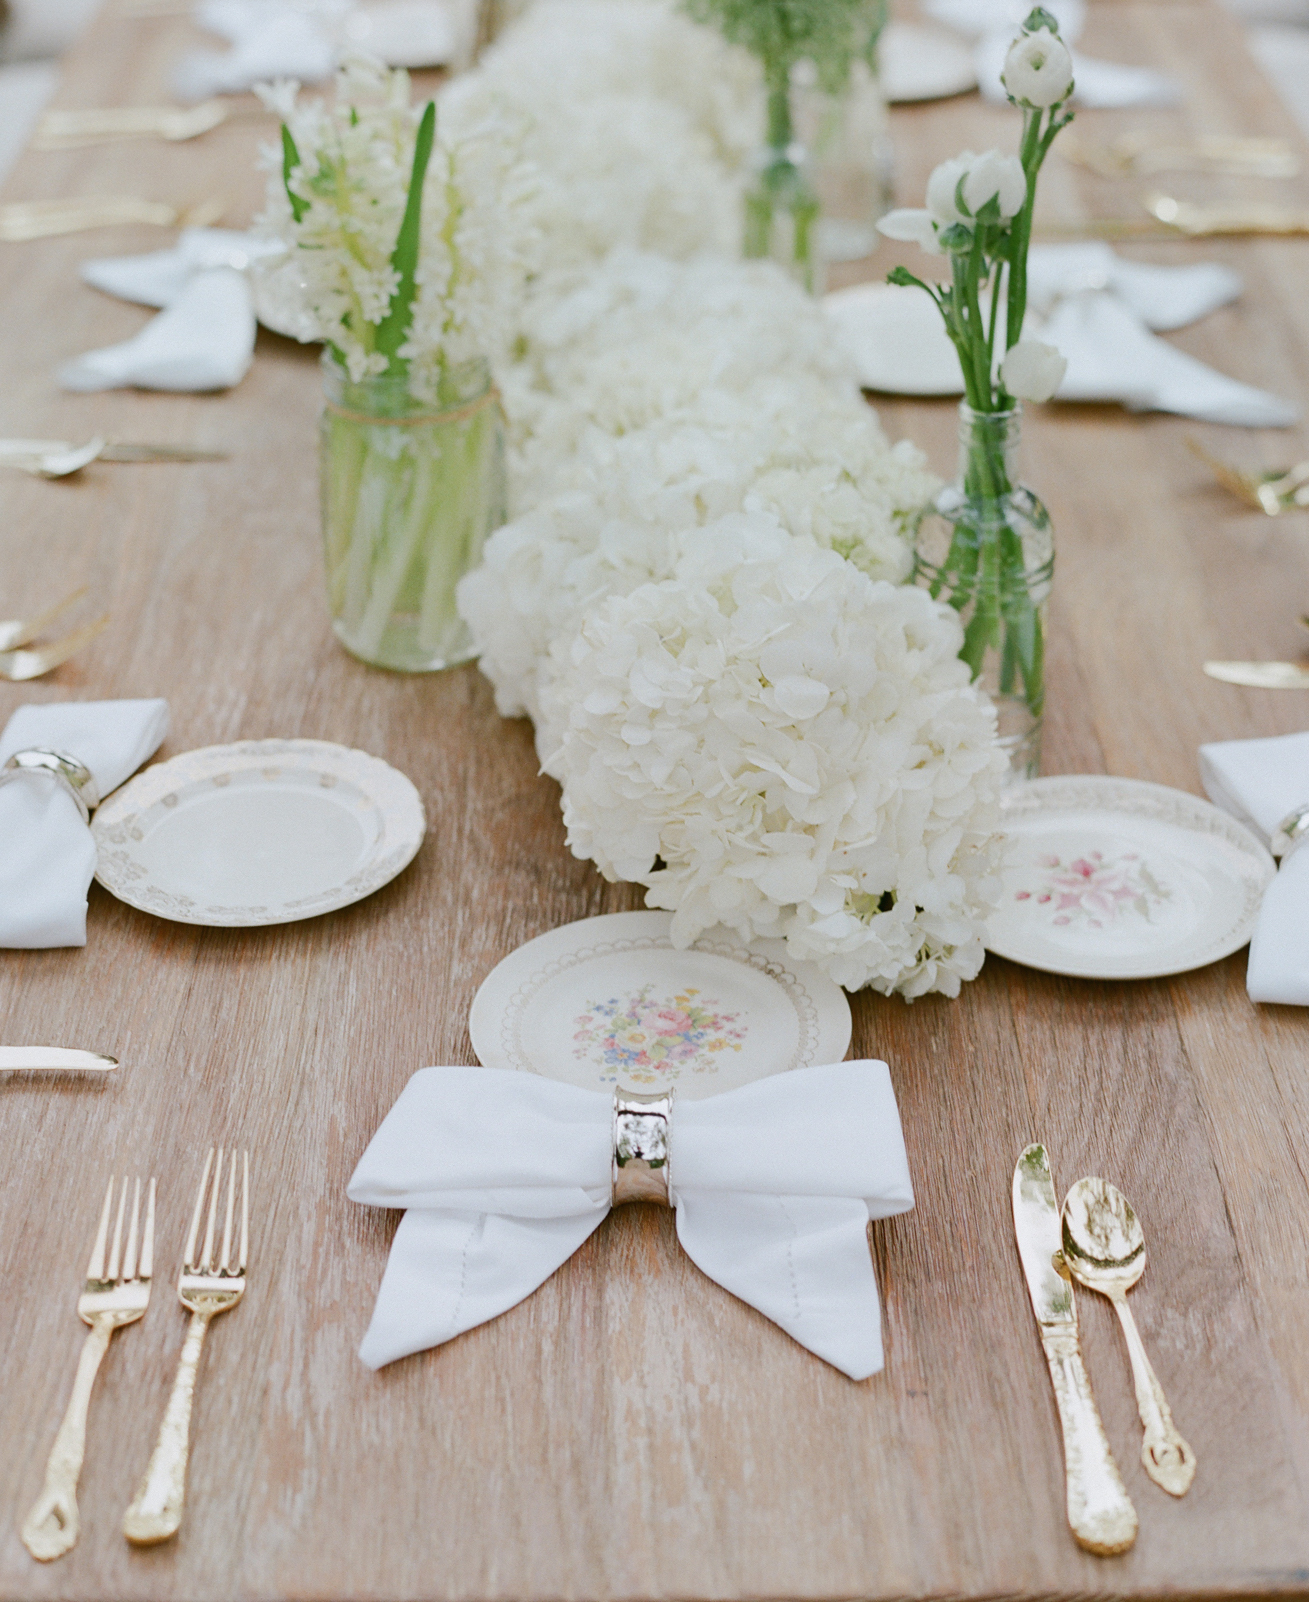 White hydrangea table runner on wood table